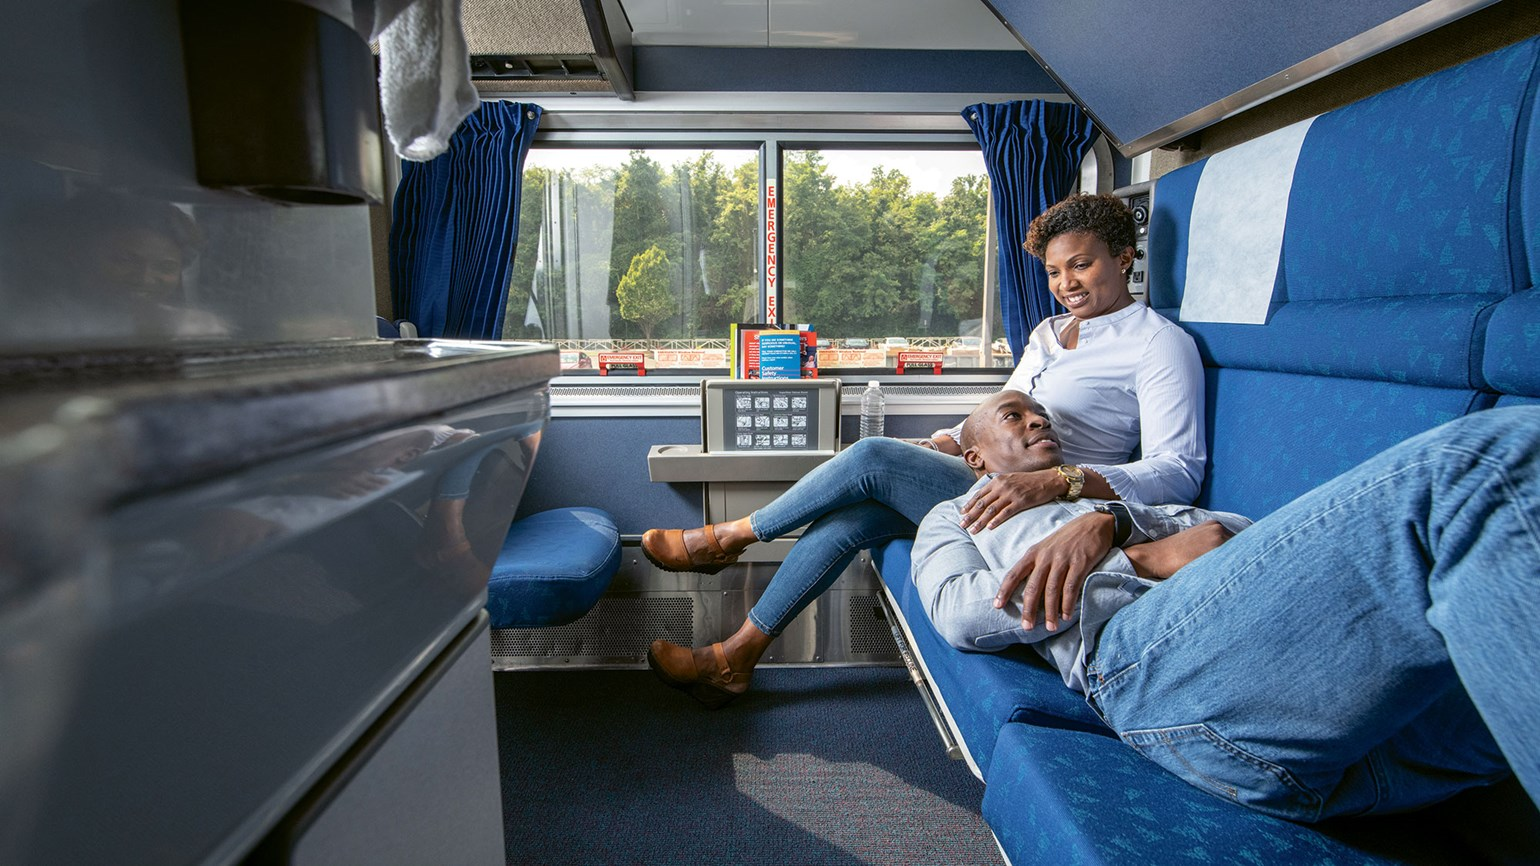 Train travel is experiencing its own version of the 'RV effect'